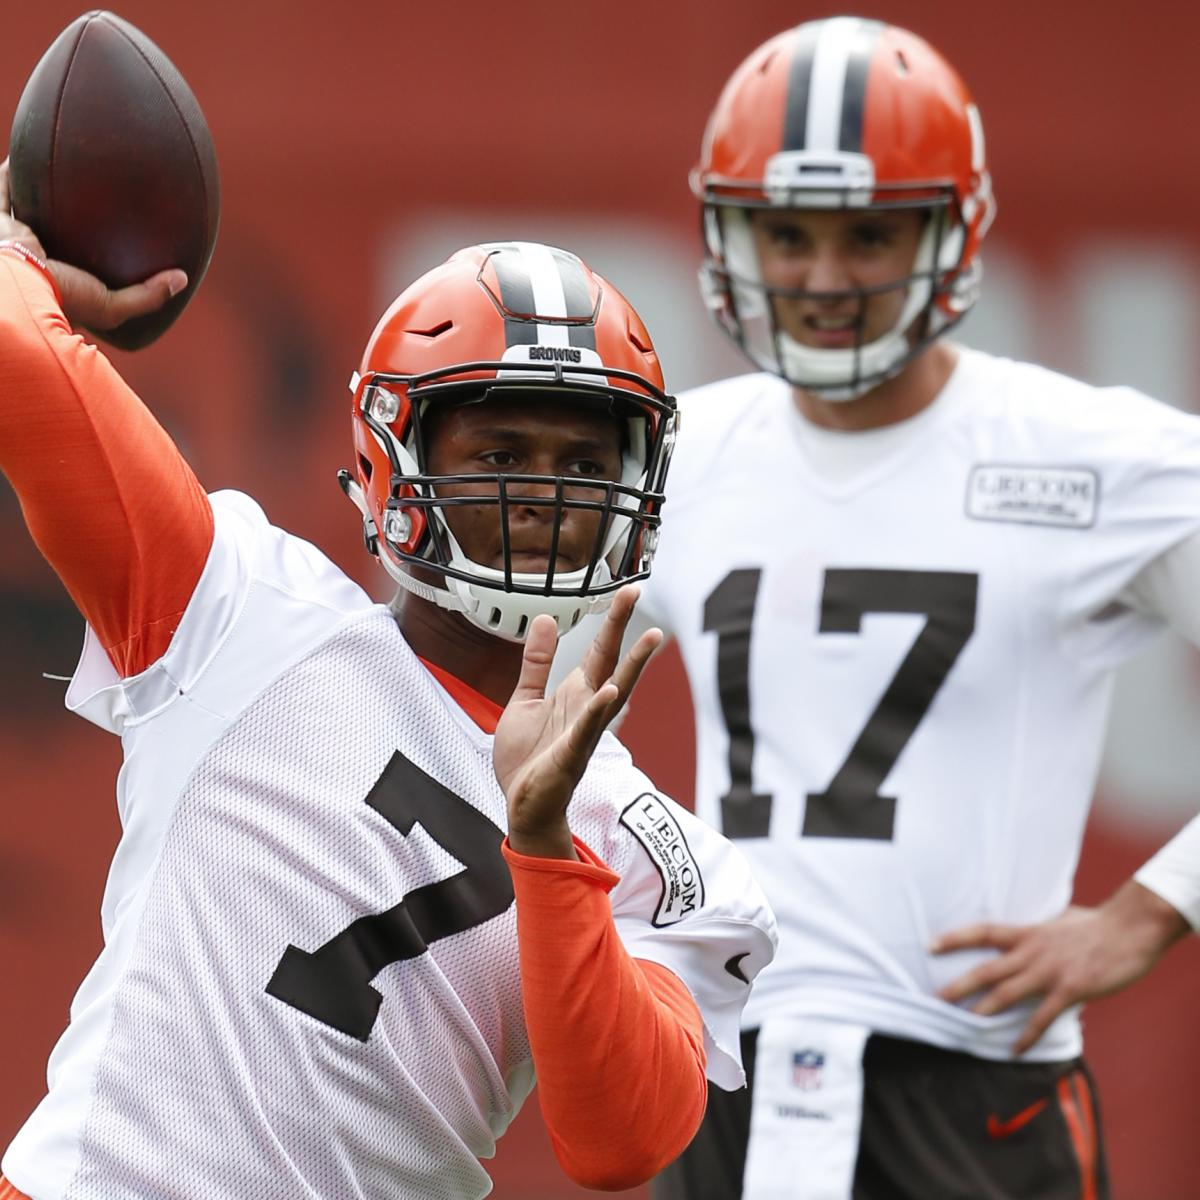 DeShone Kizer Named Browns Starting QB Over Brock Osweiler